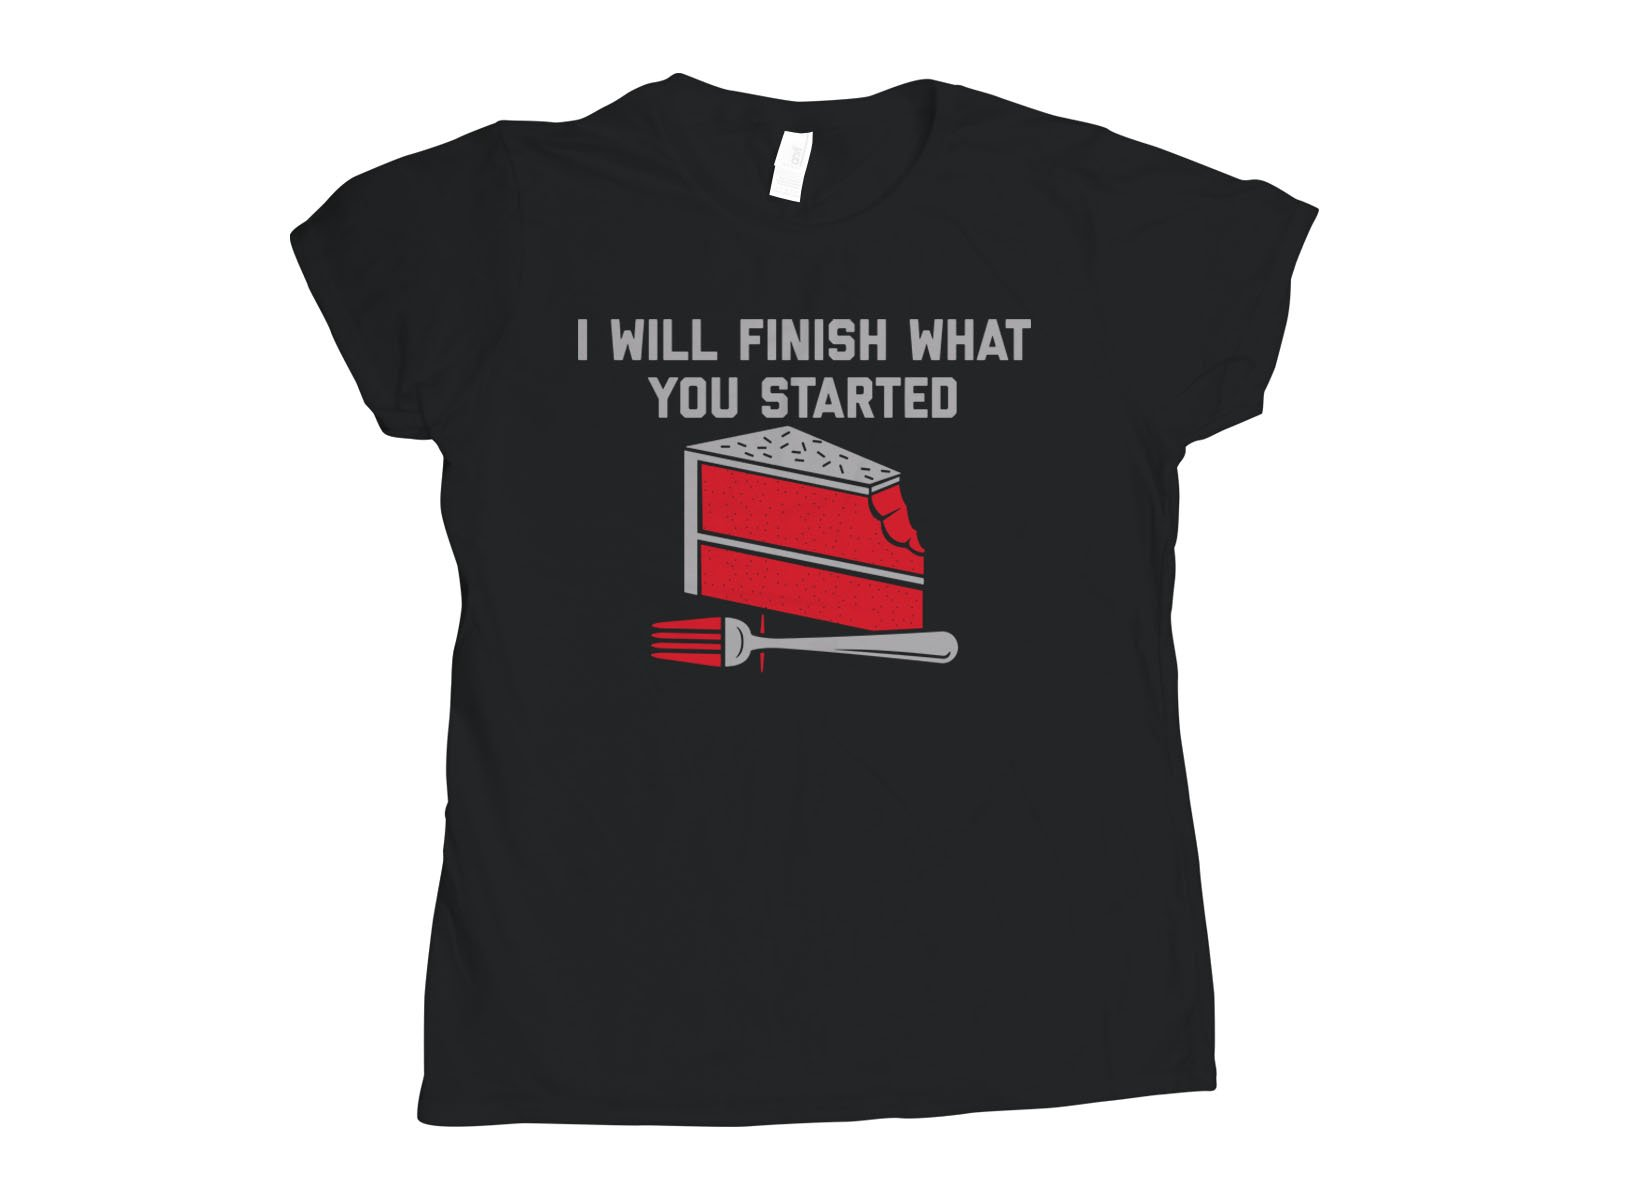 I Will Finish What You Started on Womens T-Shirt